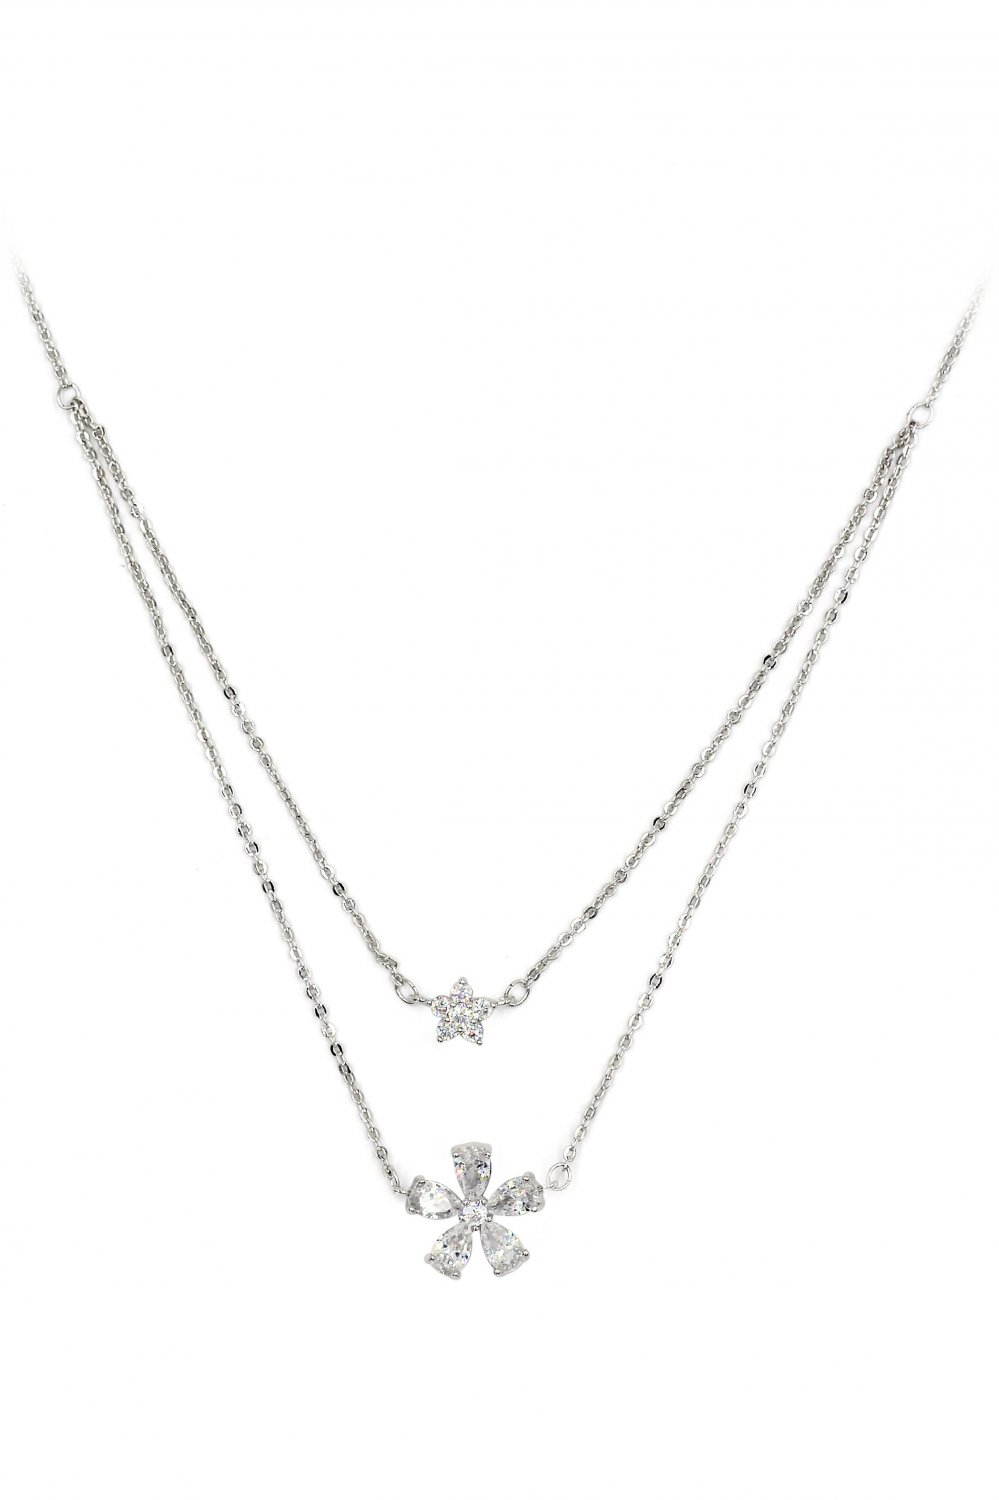 Duplexes mini flowers crystal silver necklace